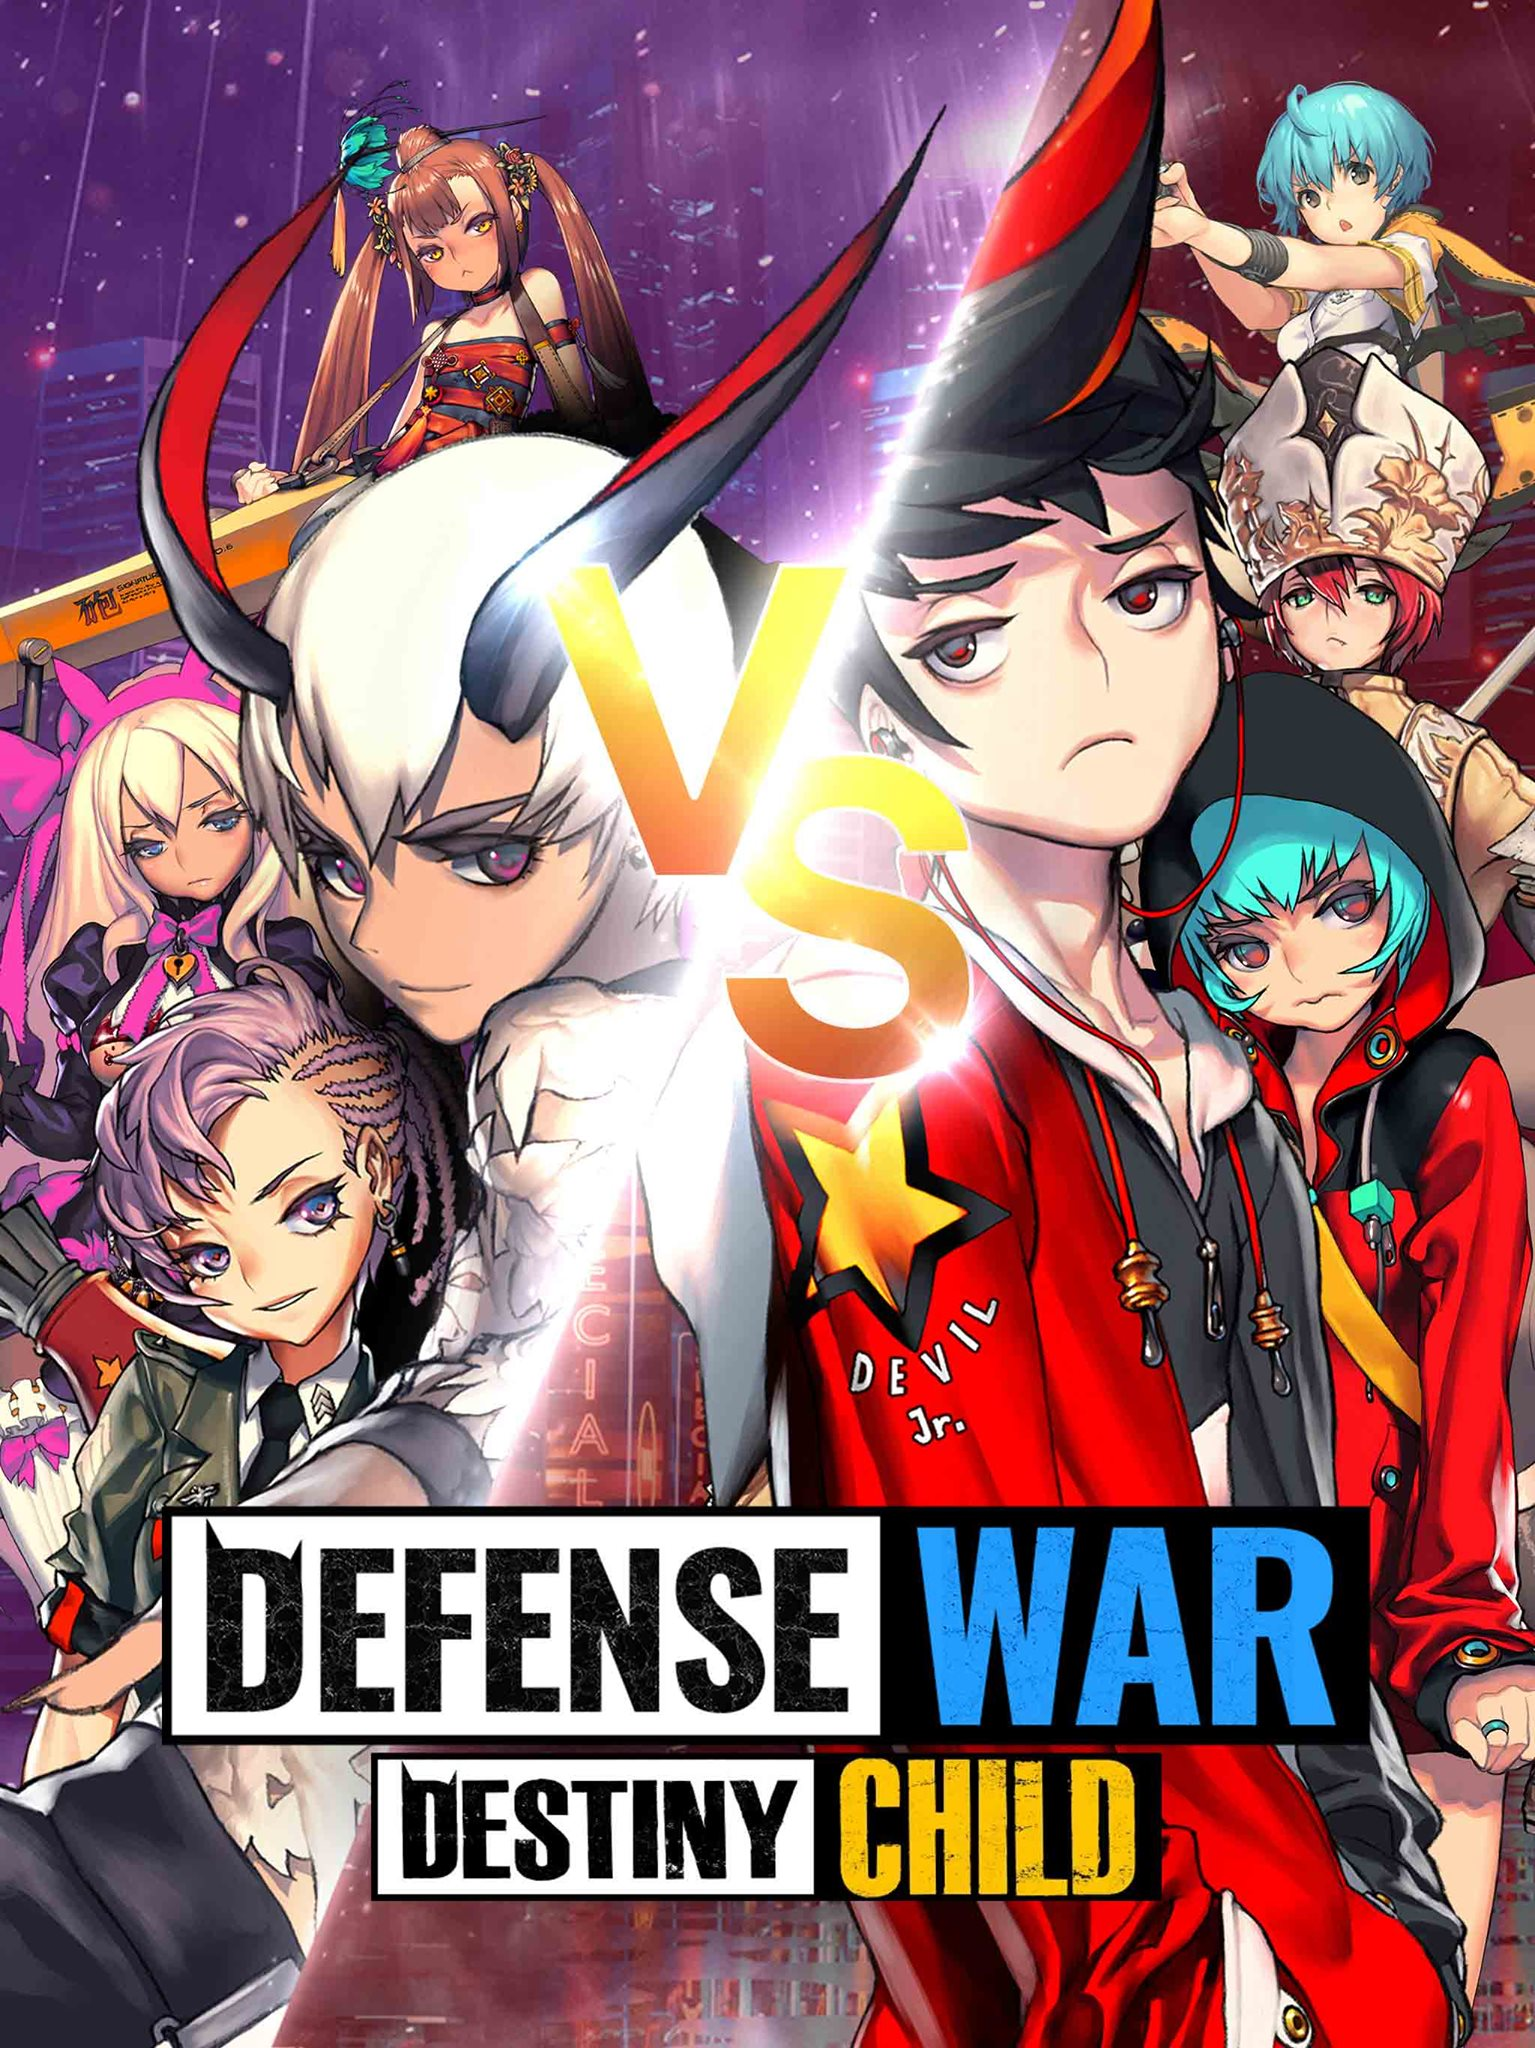 Destiny Child: Defense War Pre-Registrations Open